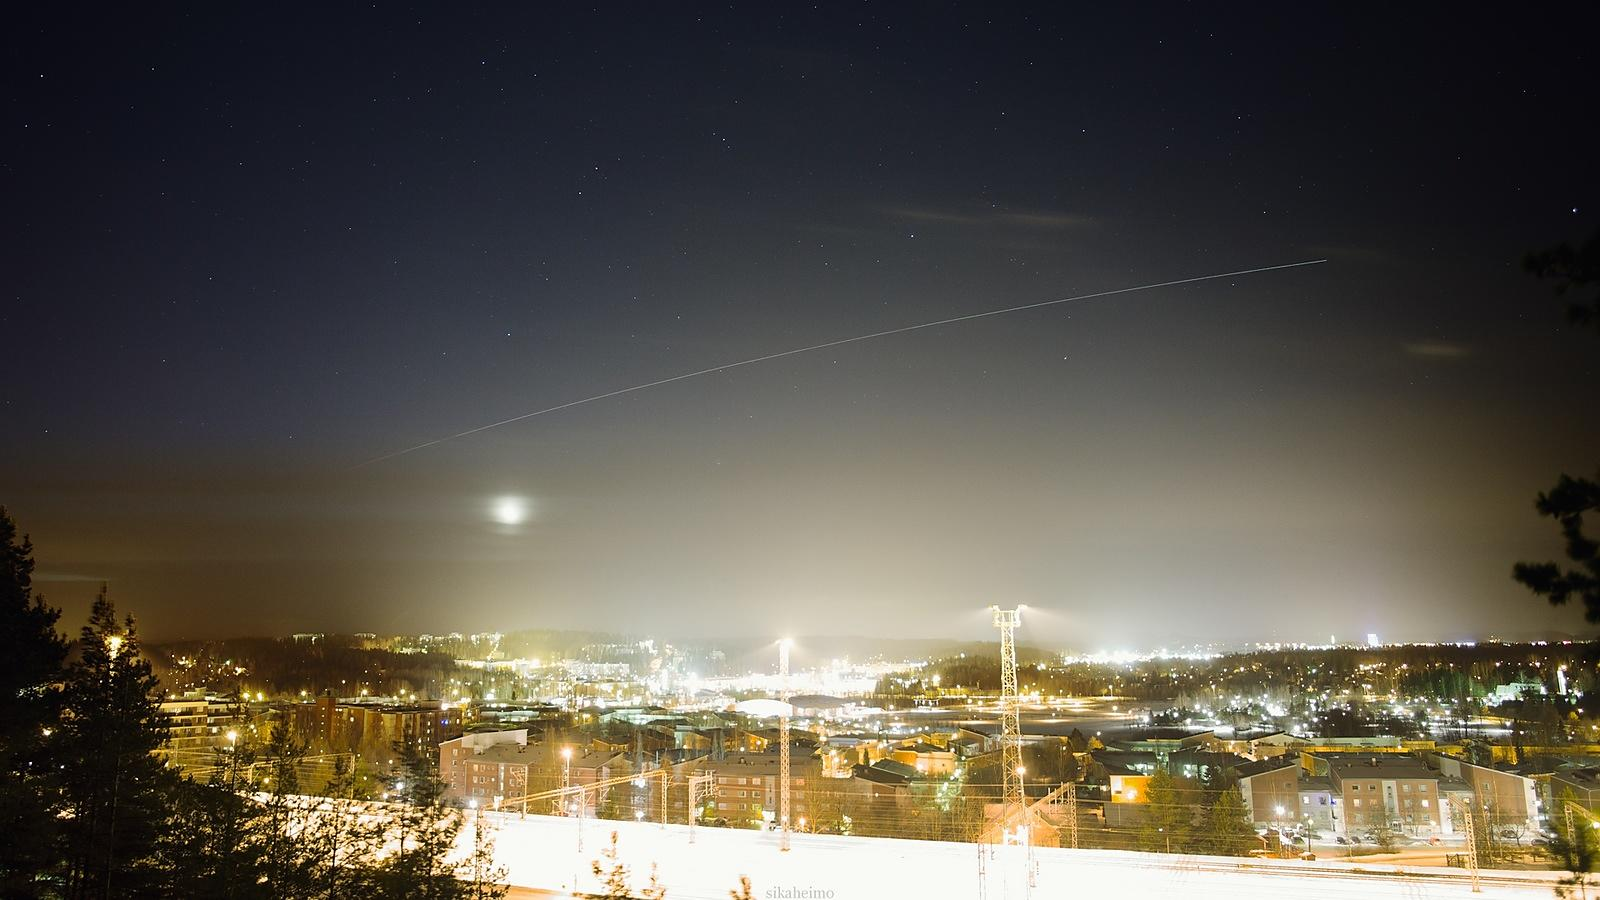 International Space Station somewhere over Ukraine, photographed in Lahti, Finland on Jan 17 2015.